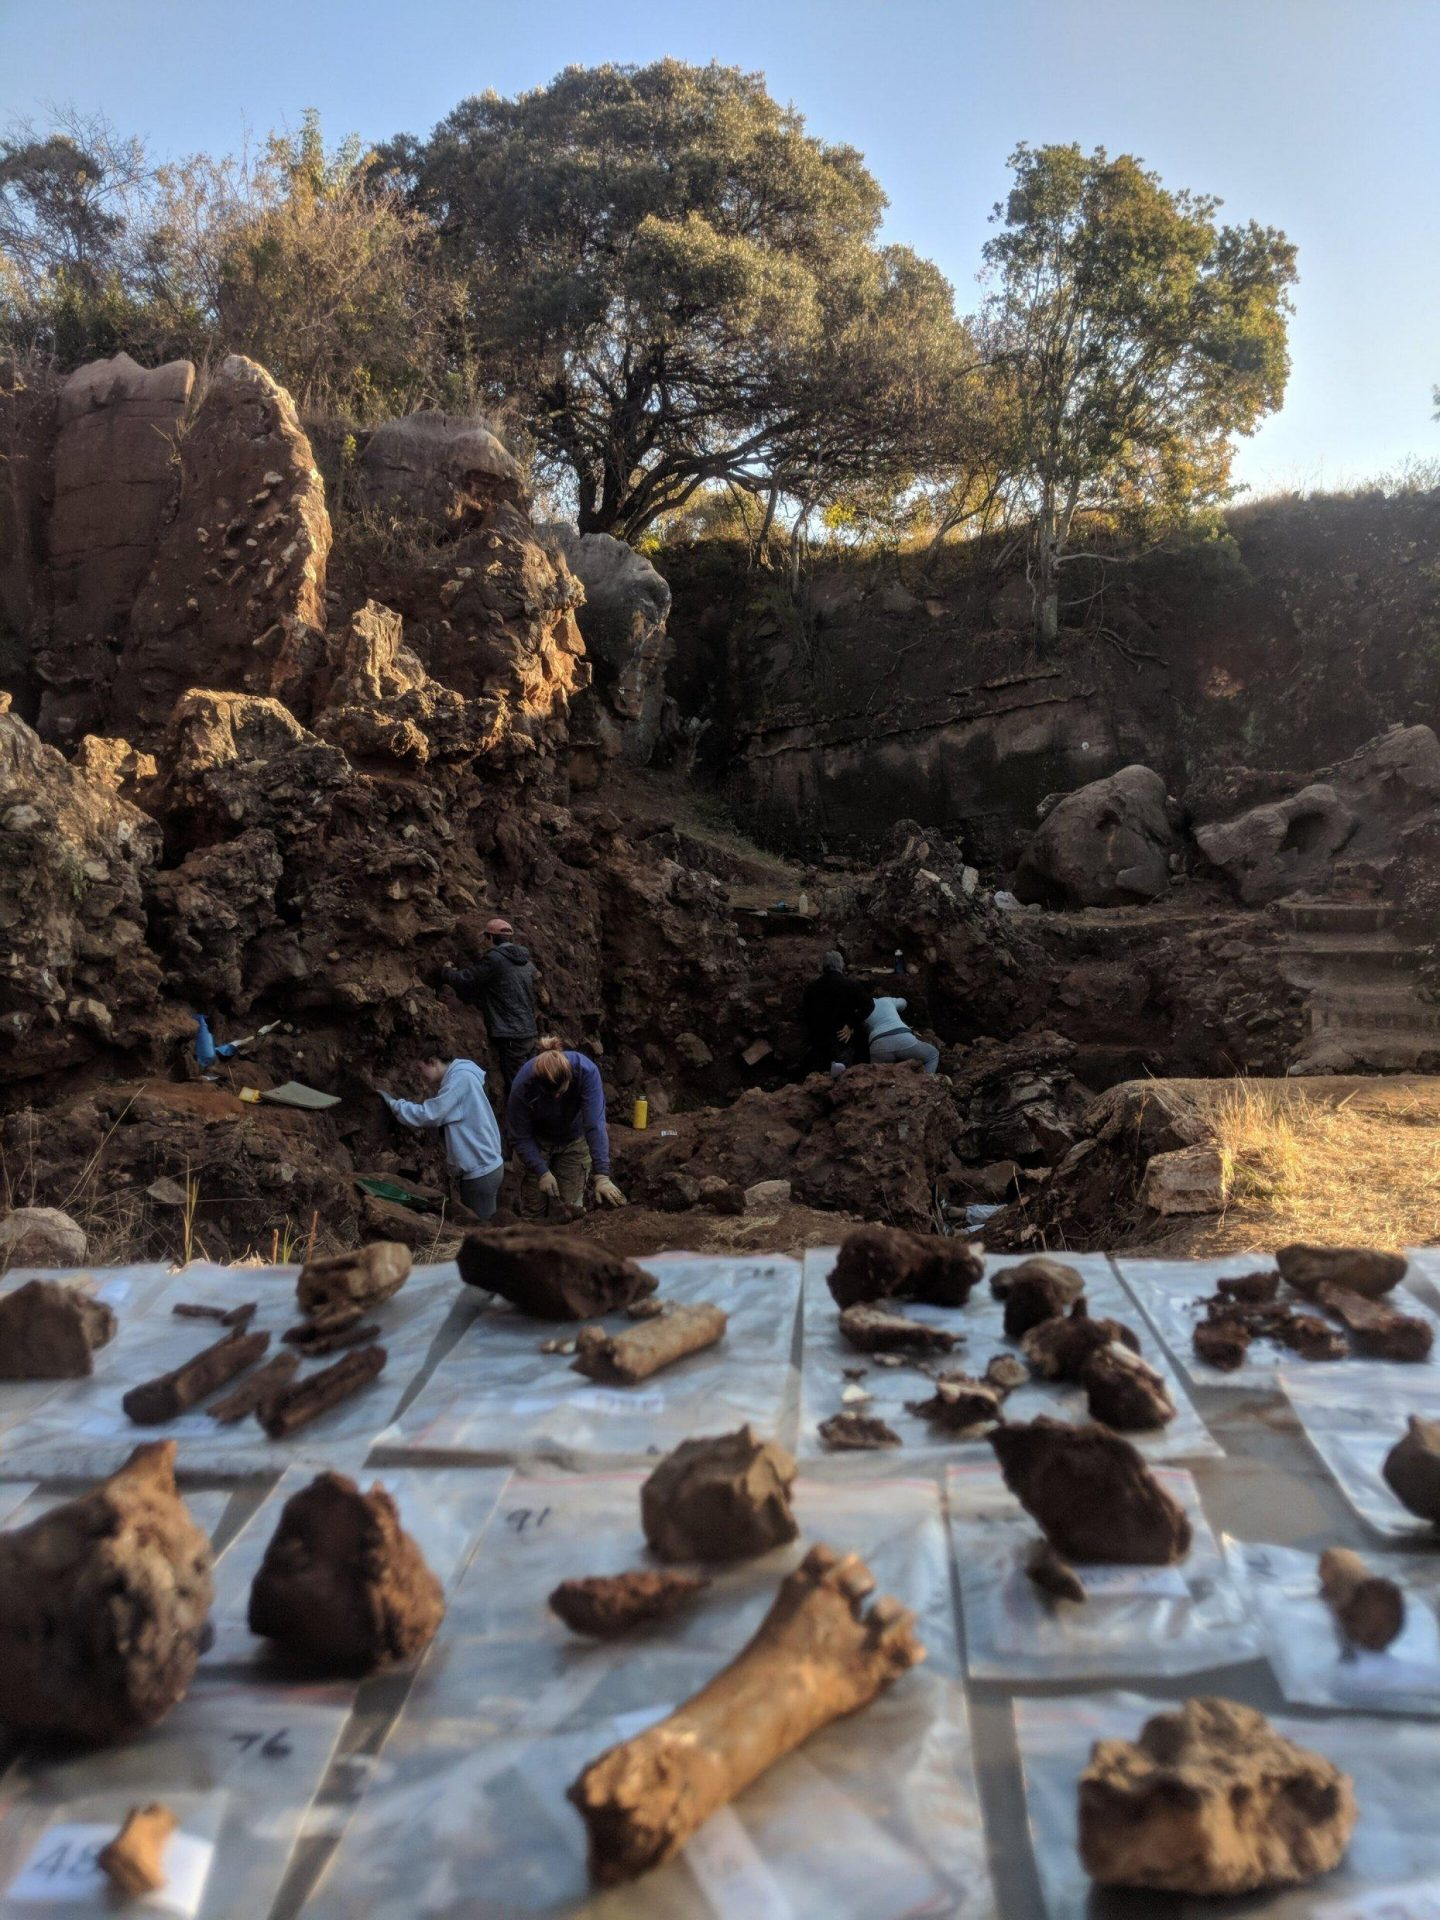 The Drimolen excavations and excavated fossils. (Image: Andy Herries)